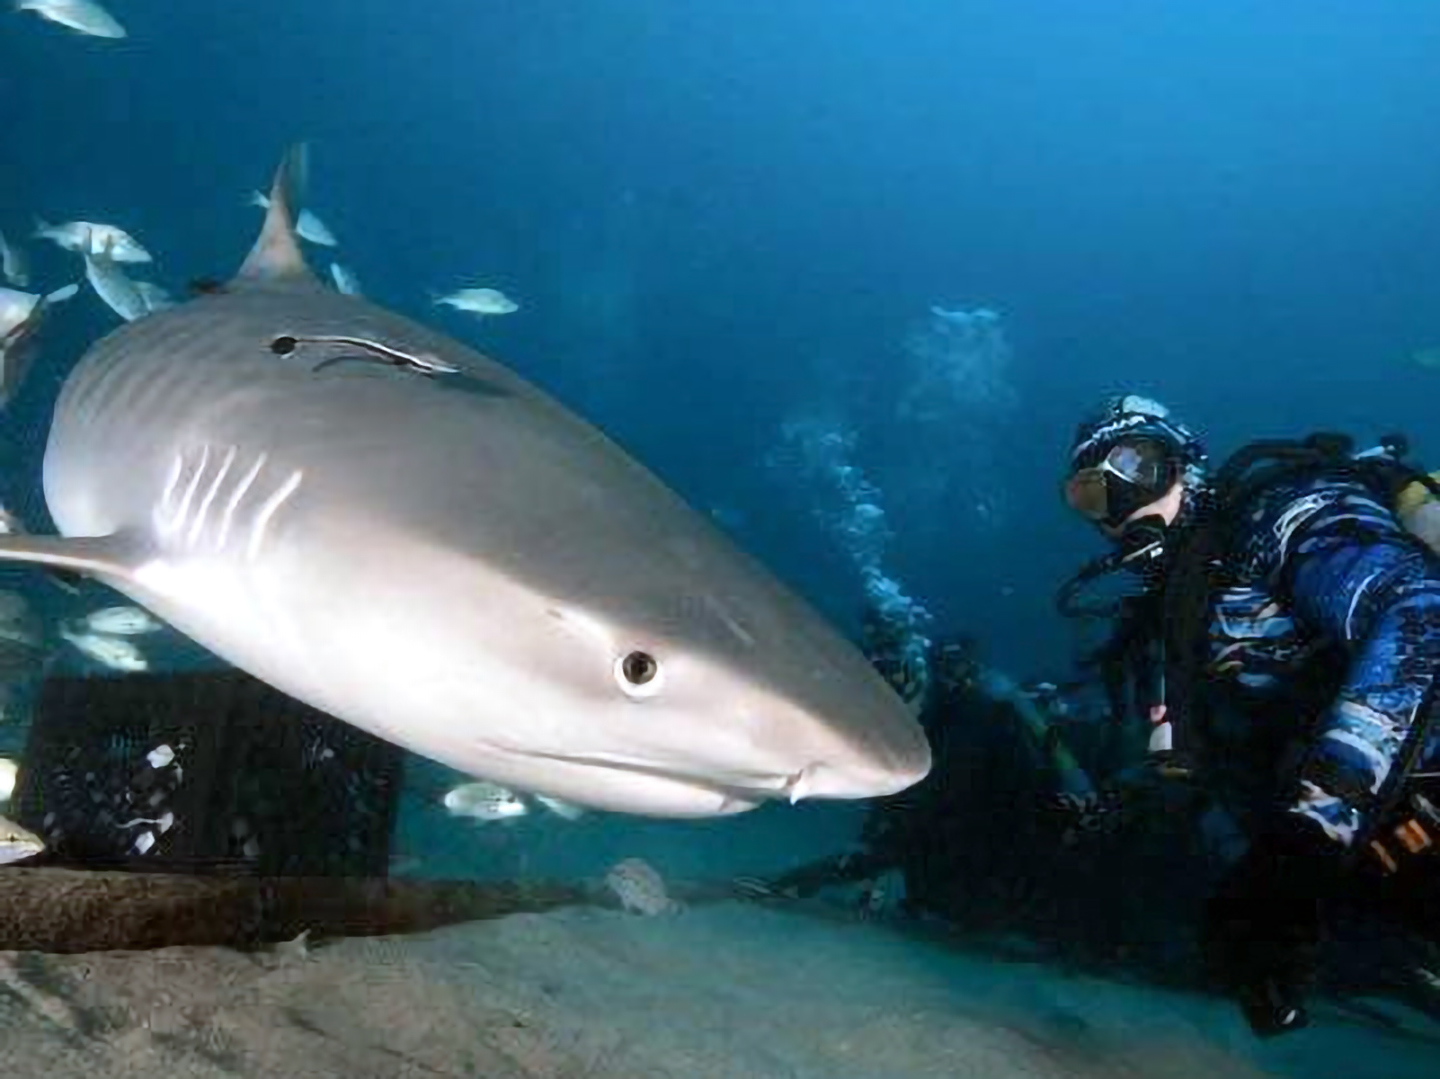 An image of a diver near a Shark in the Florida Keys